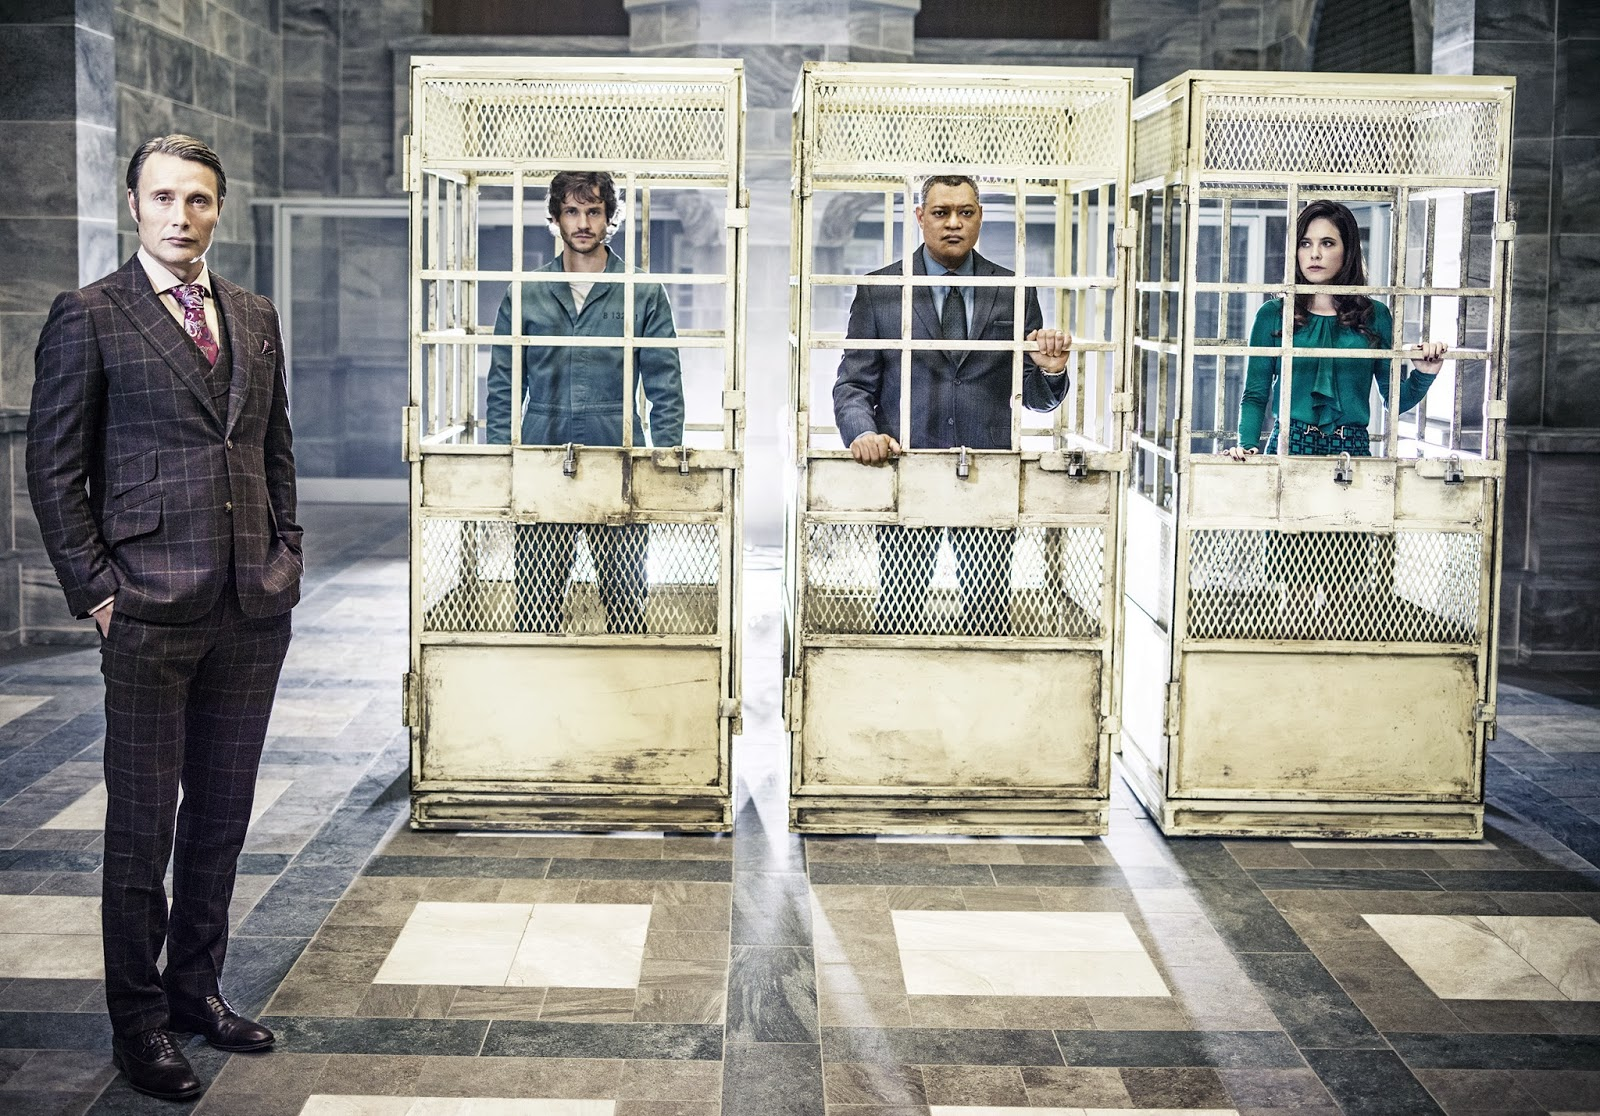 Hannibal Season Two: First Teaser Trailer & Image